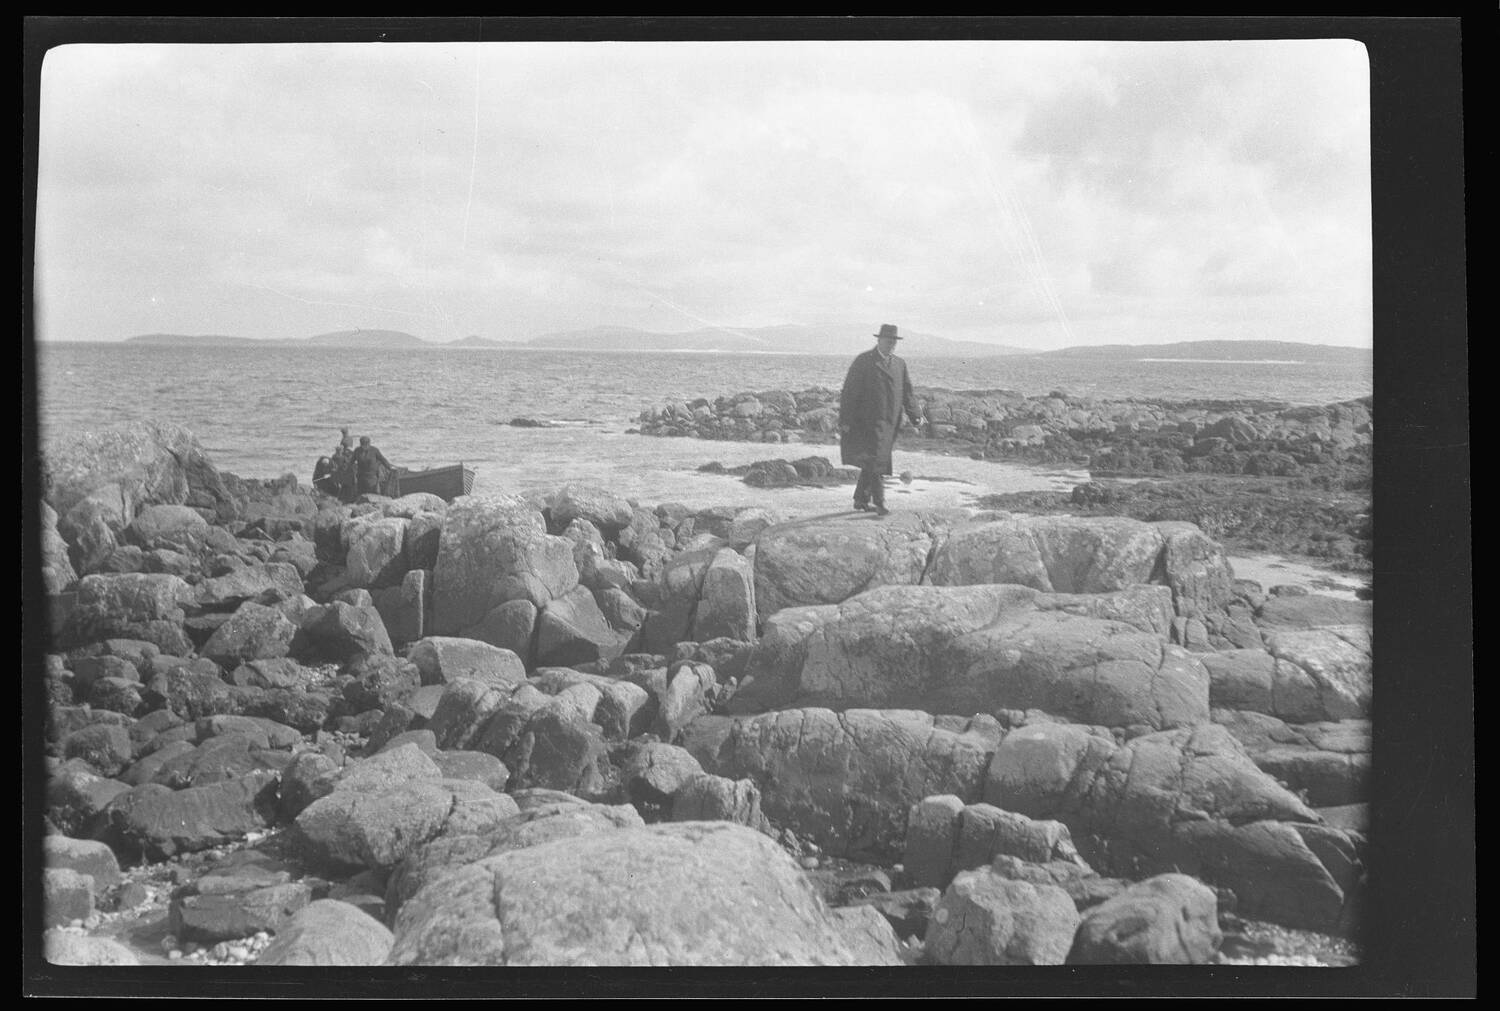 A man in a long coat and dark hat walks across the rocky shore of a far-flung island ...